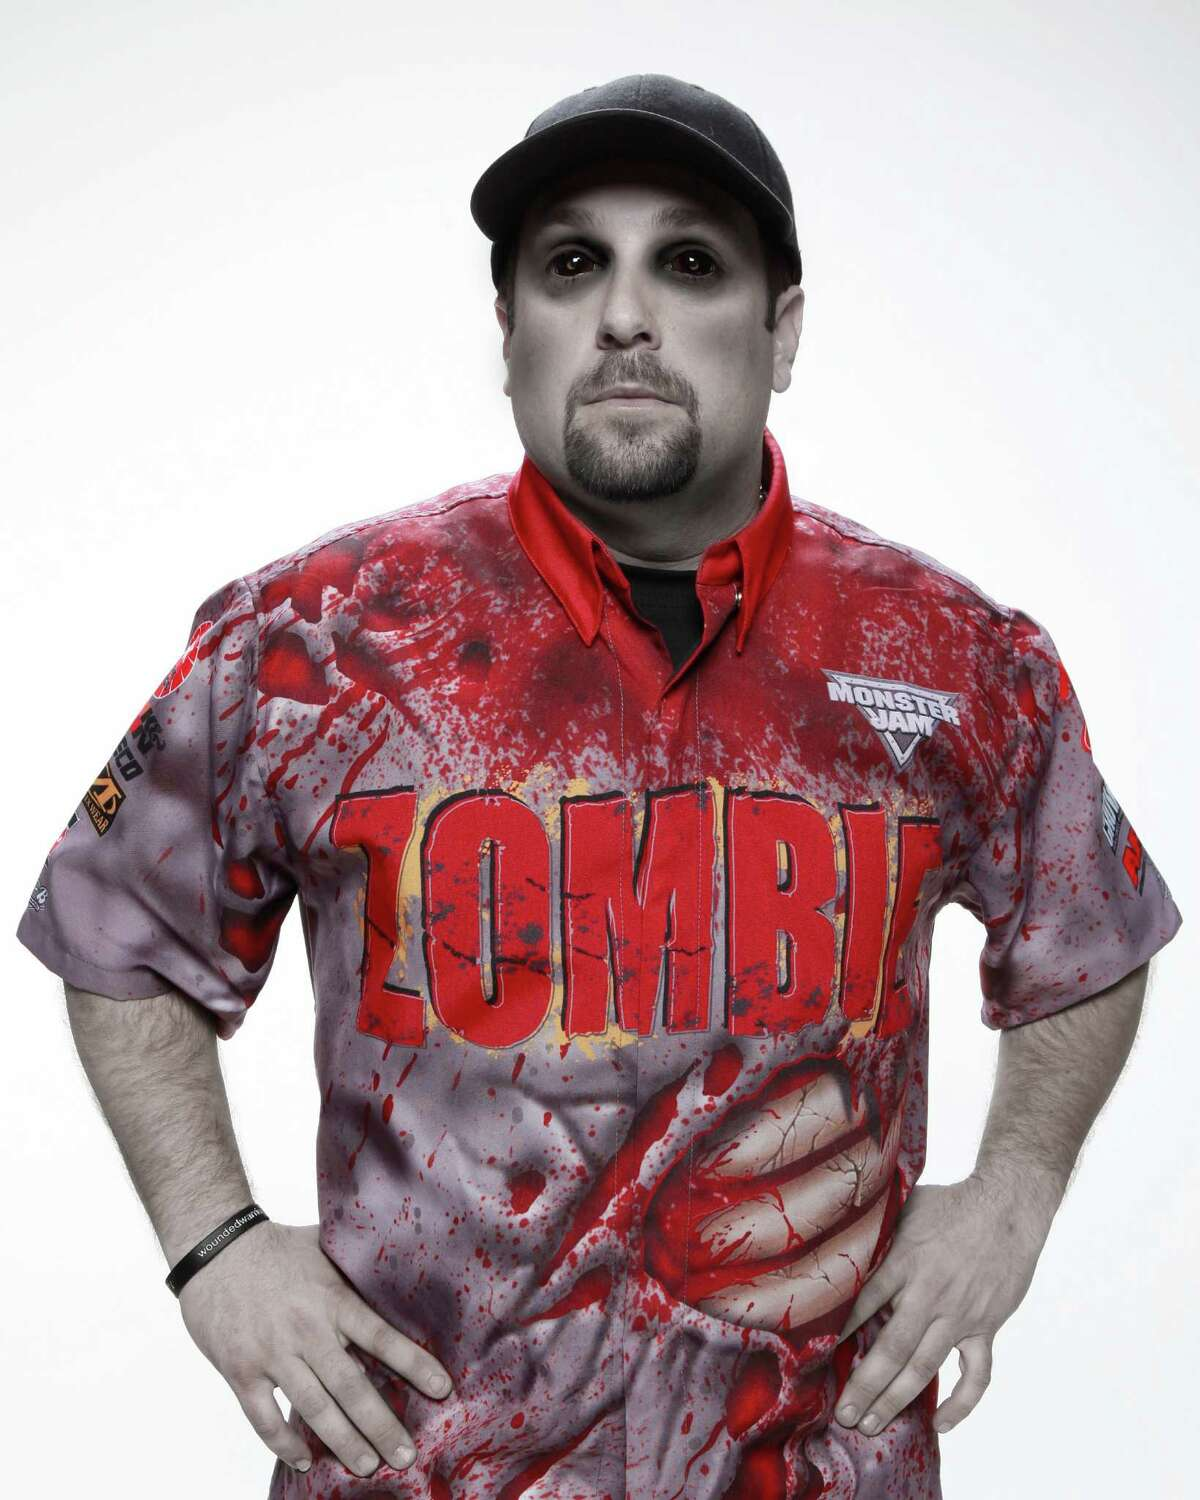 Former New Orleans police officer Sean Duhon comes to Bridgeport's Webster Bank Arena for Monster Jam, Friday-Sunday, March 4-6. His truck is called Zombie.